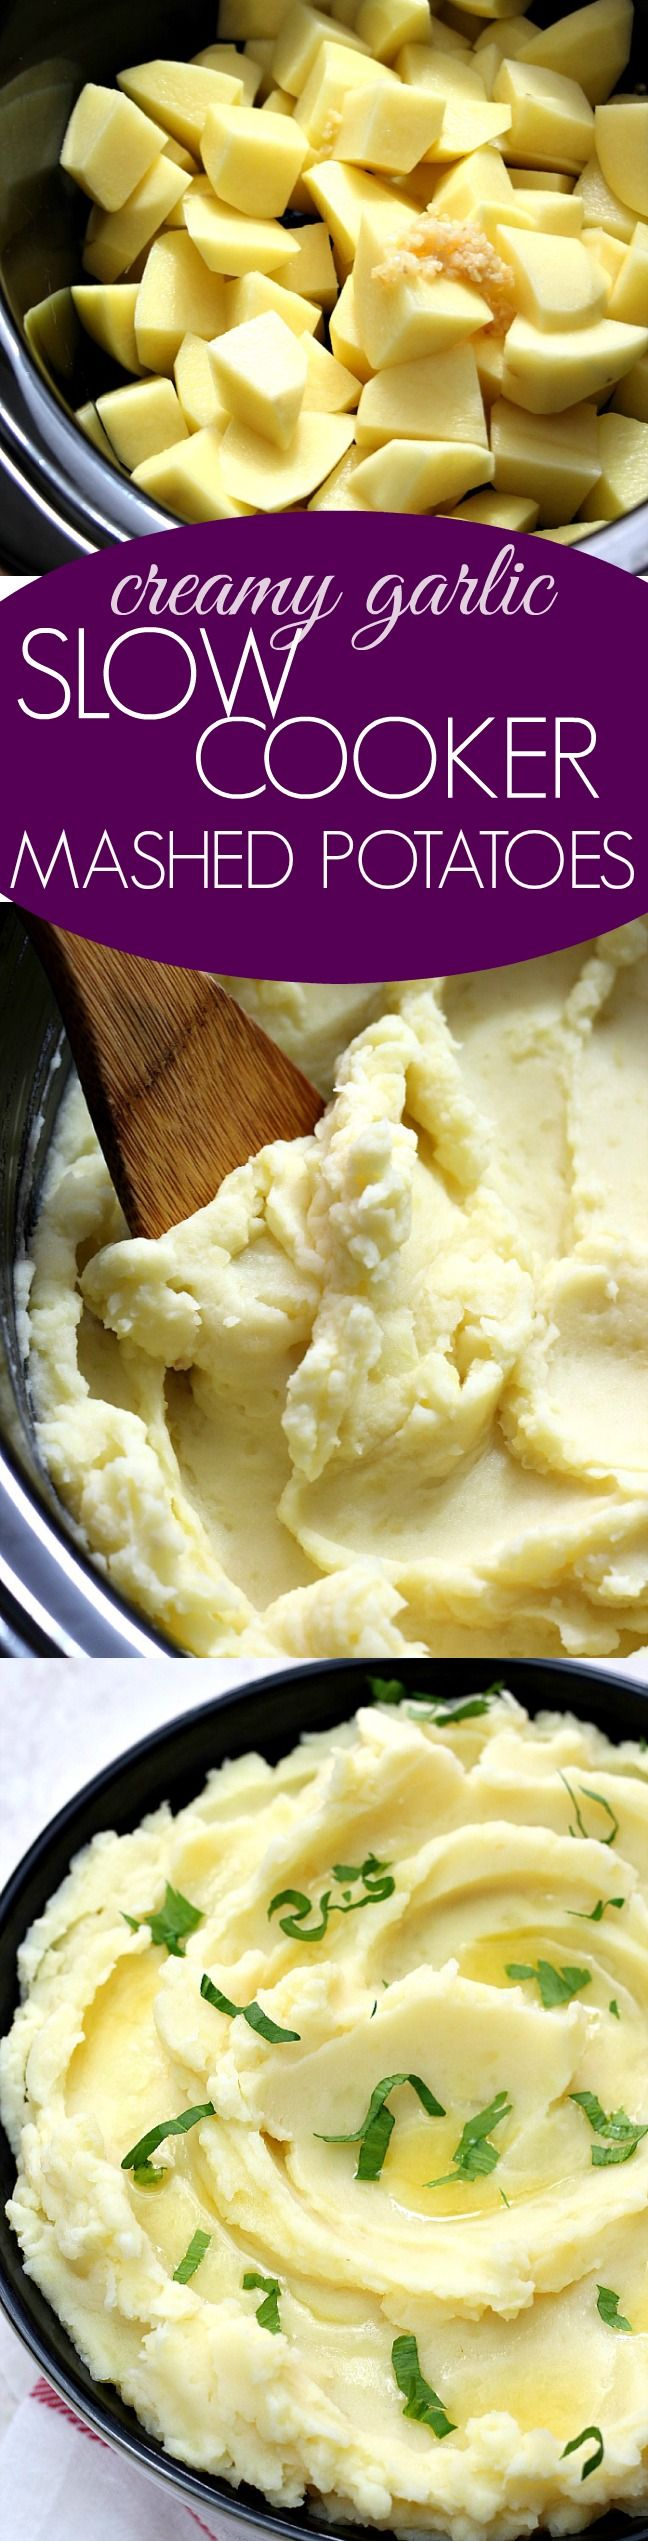 Creamy Garlic Slow Cooker Mashed Potatoes - save time and space and make the best mashed potatoes right in your crock pot! Creamy, garlicky and pure comfort food!